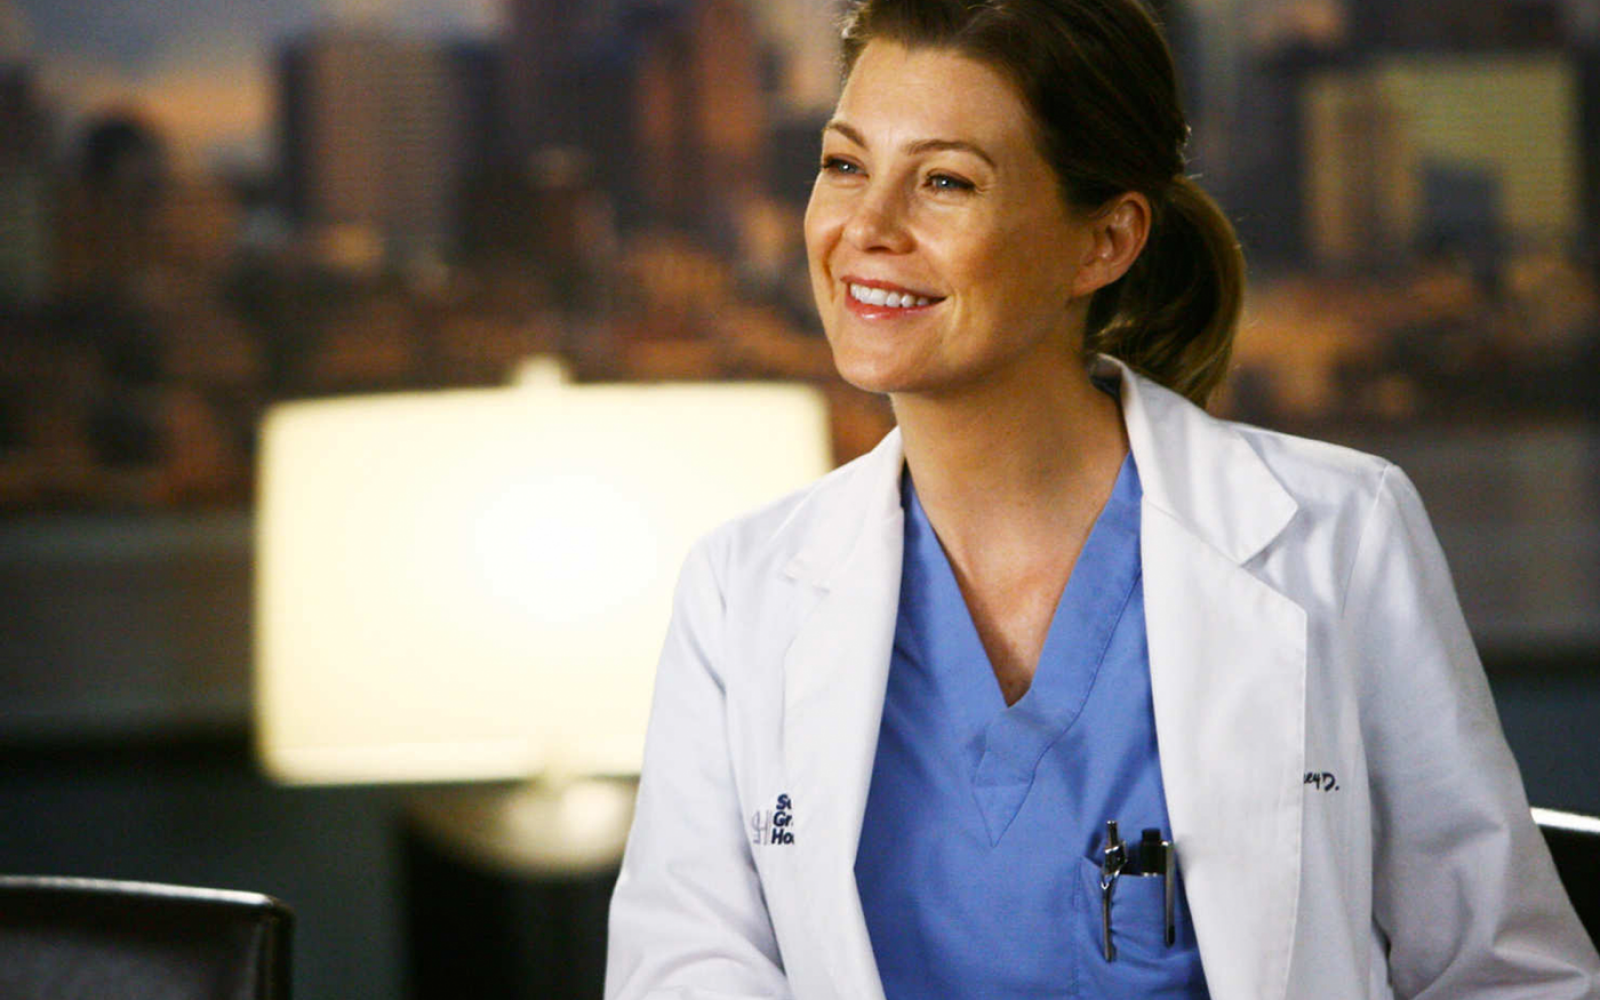 18 Grey's Anatomy Quotes That Were All Too Real For Television